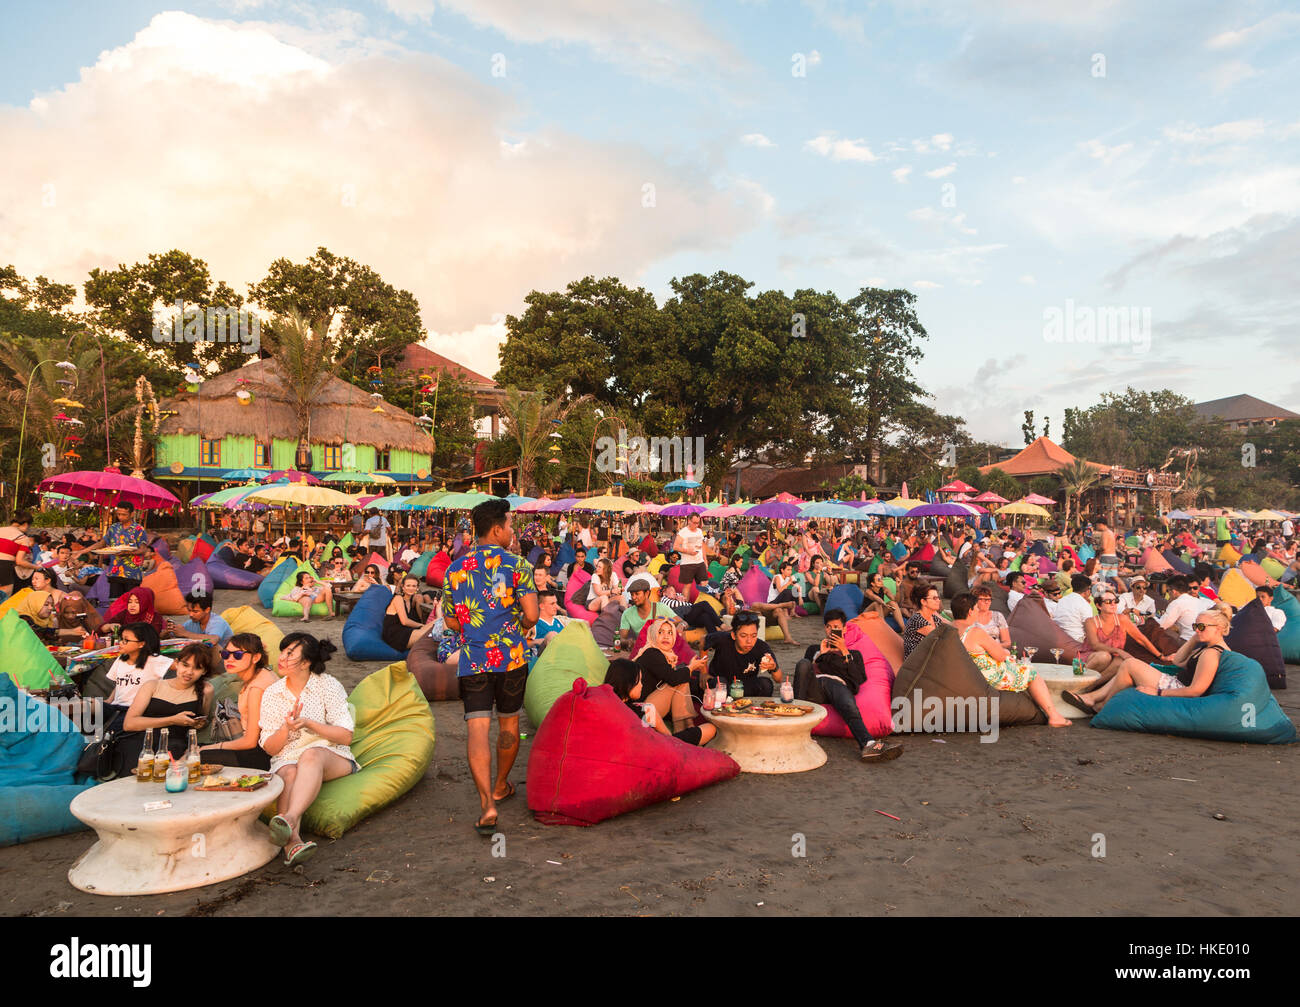 KUTA, INDONESIA - FEBRUARY 19, 2016: A large crowd of tourists, Indonesian and foreigners, enjoy the sunset at a - Stock Image